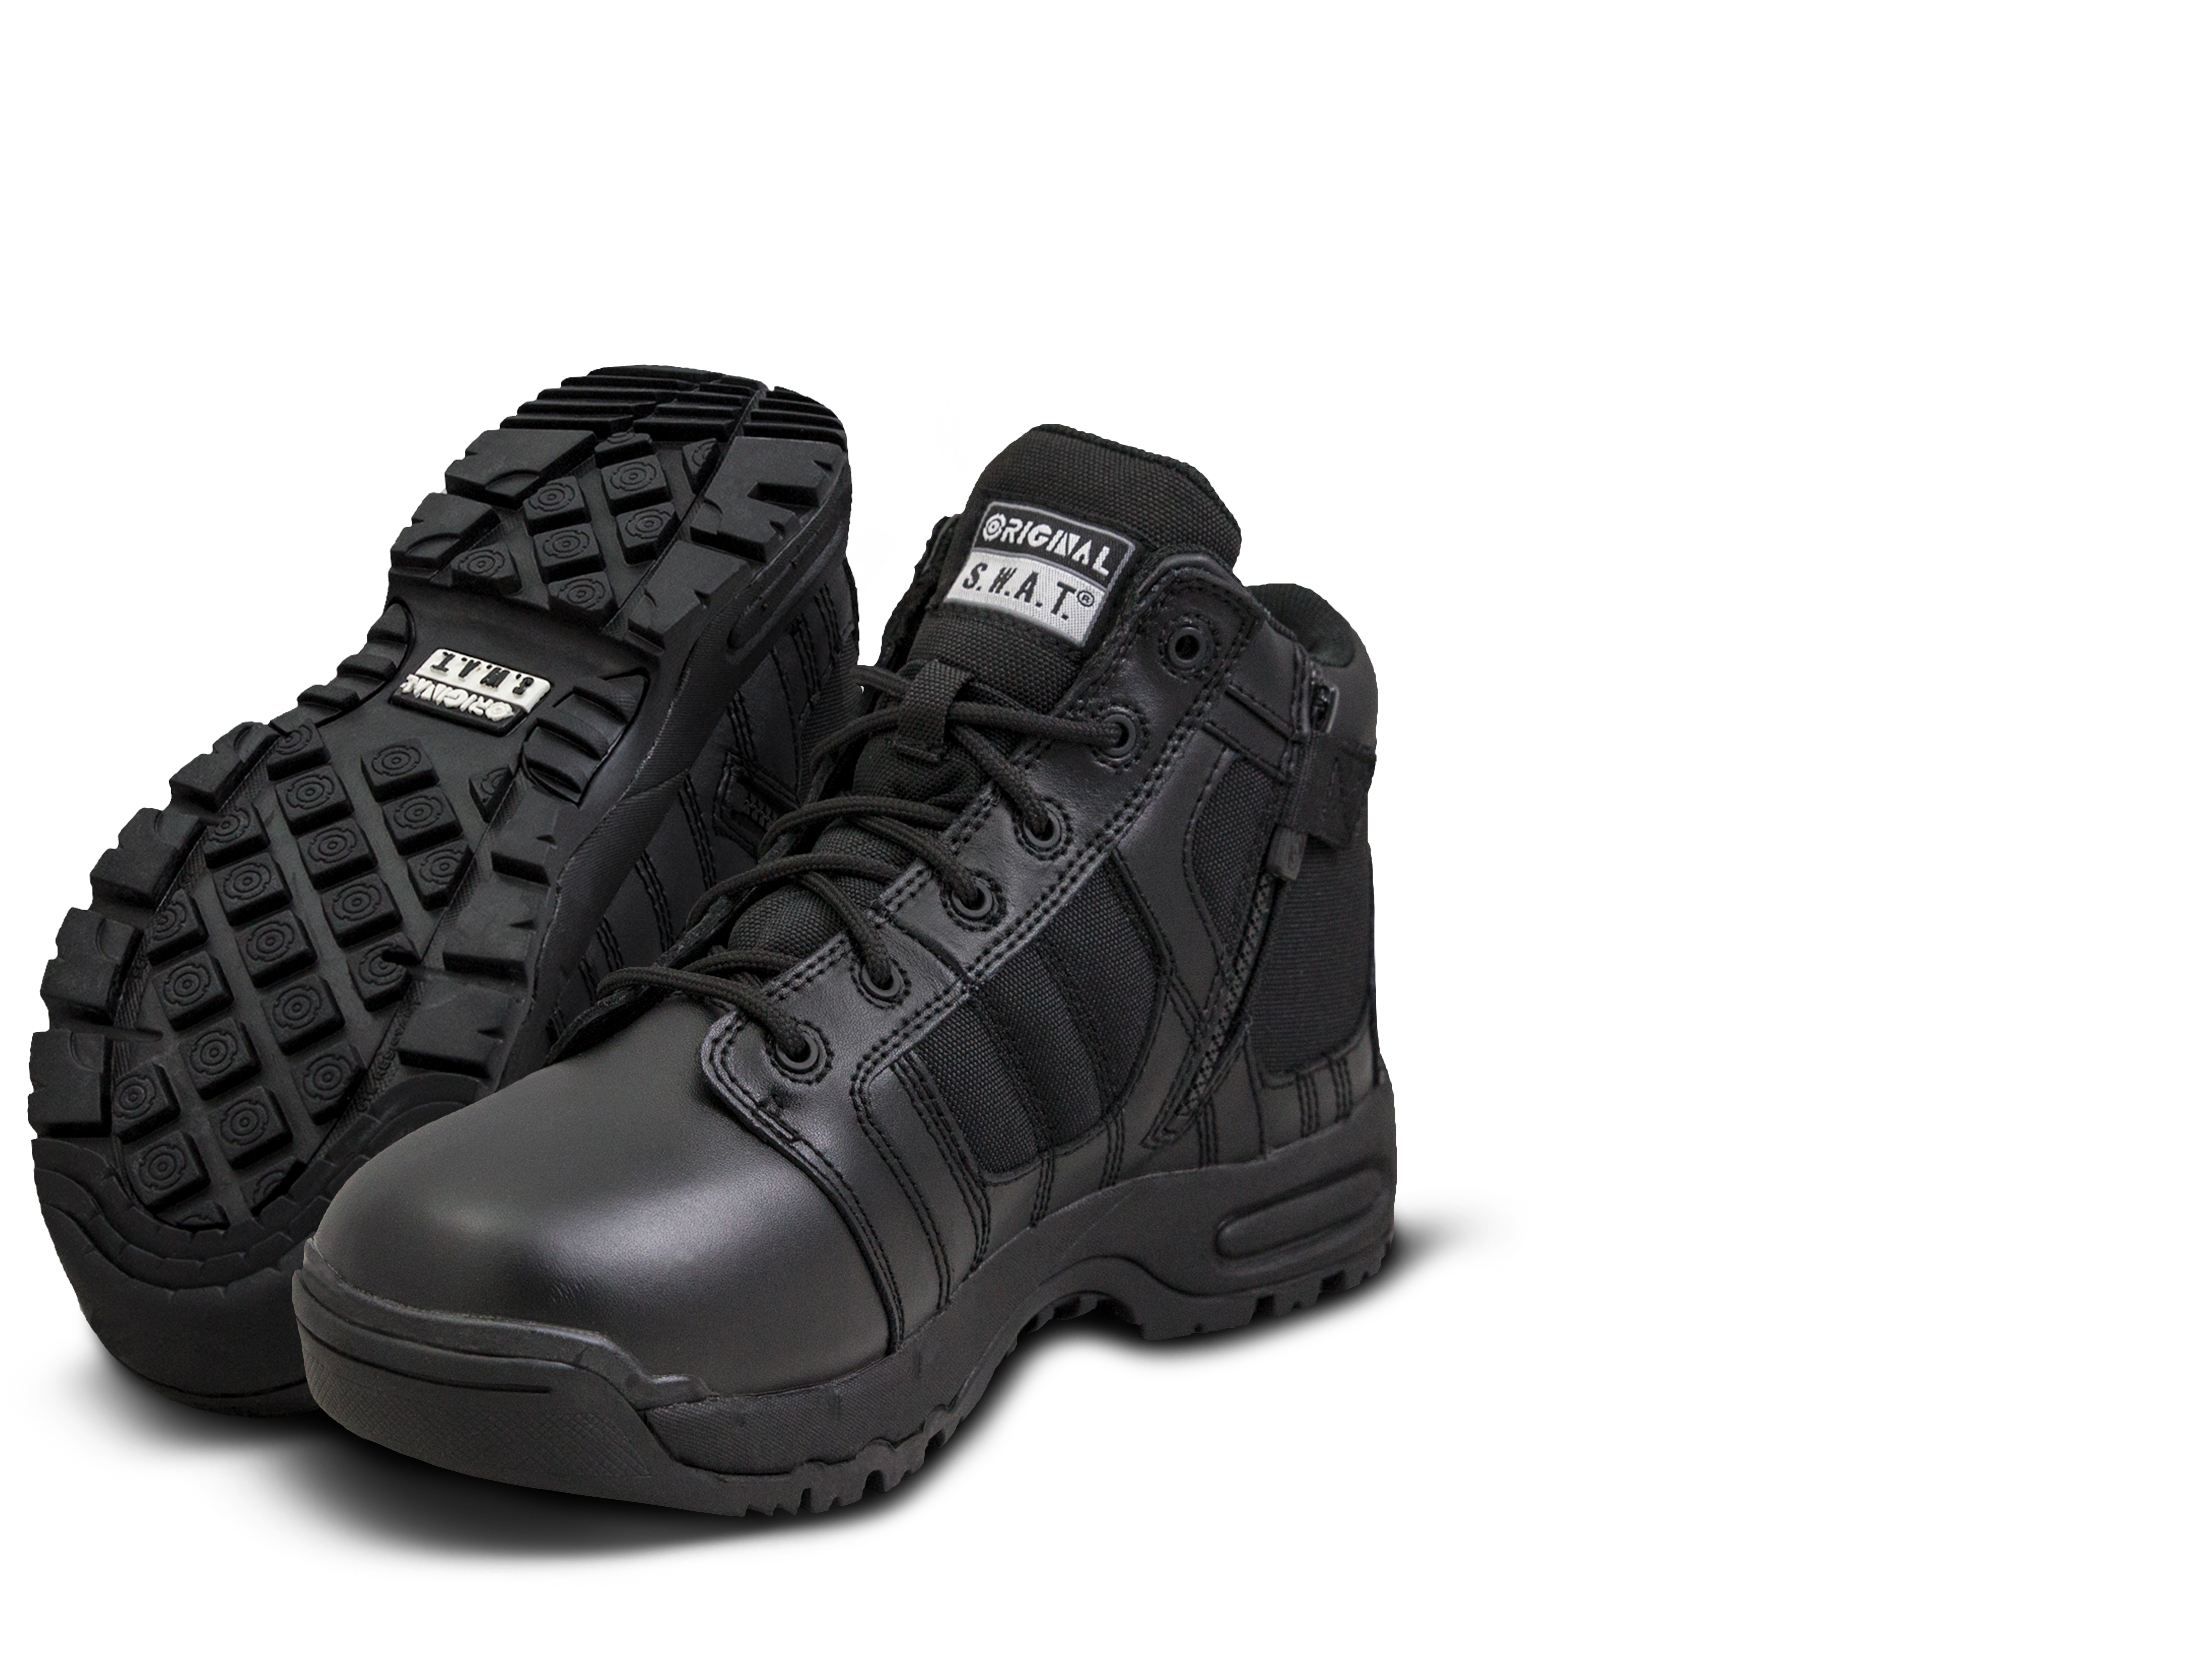 new arrival 9c700 6f053 air on the side of the shoe